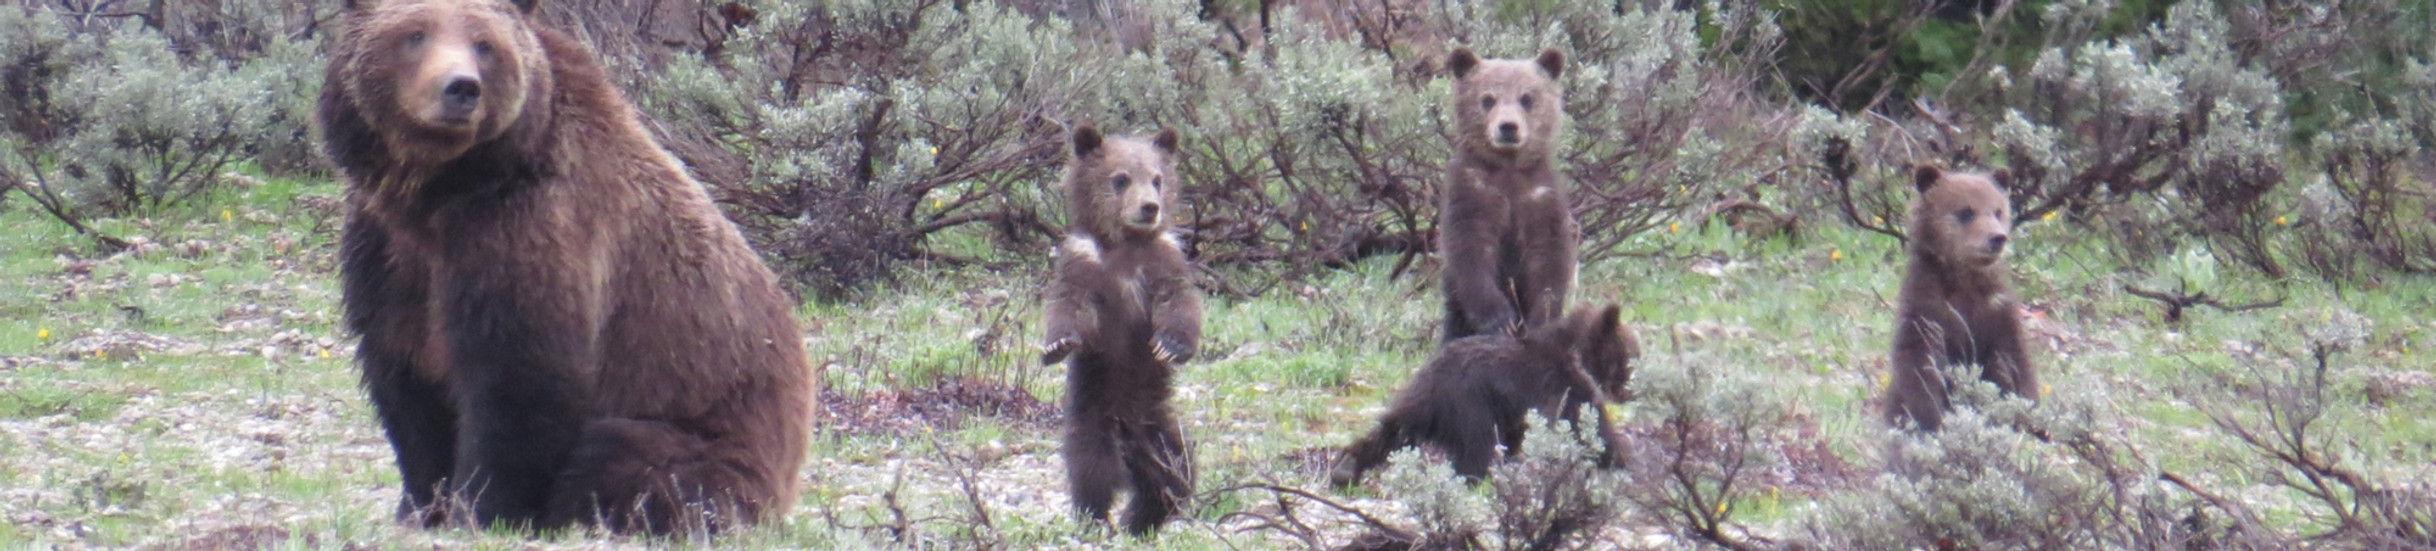 Yellowstone-National-Park-Tours-Grizzly-